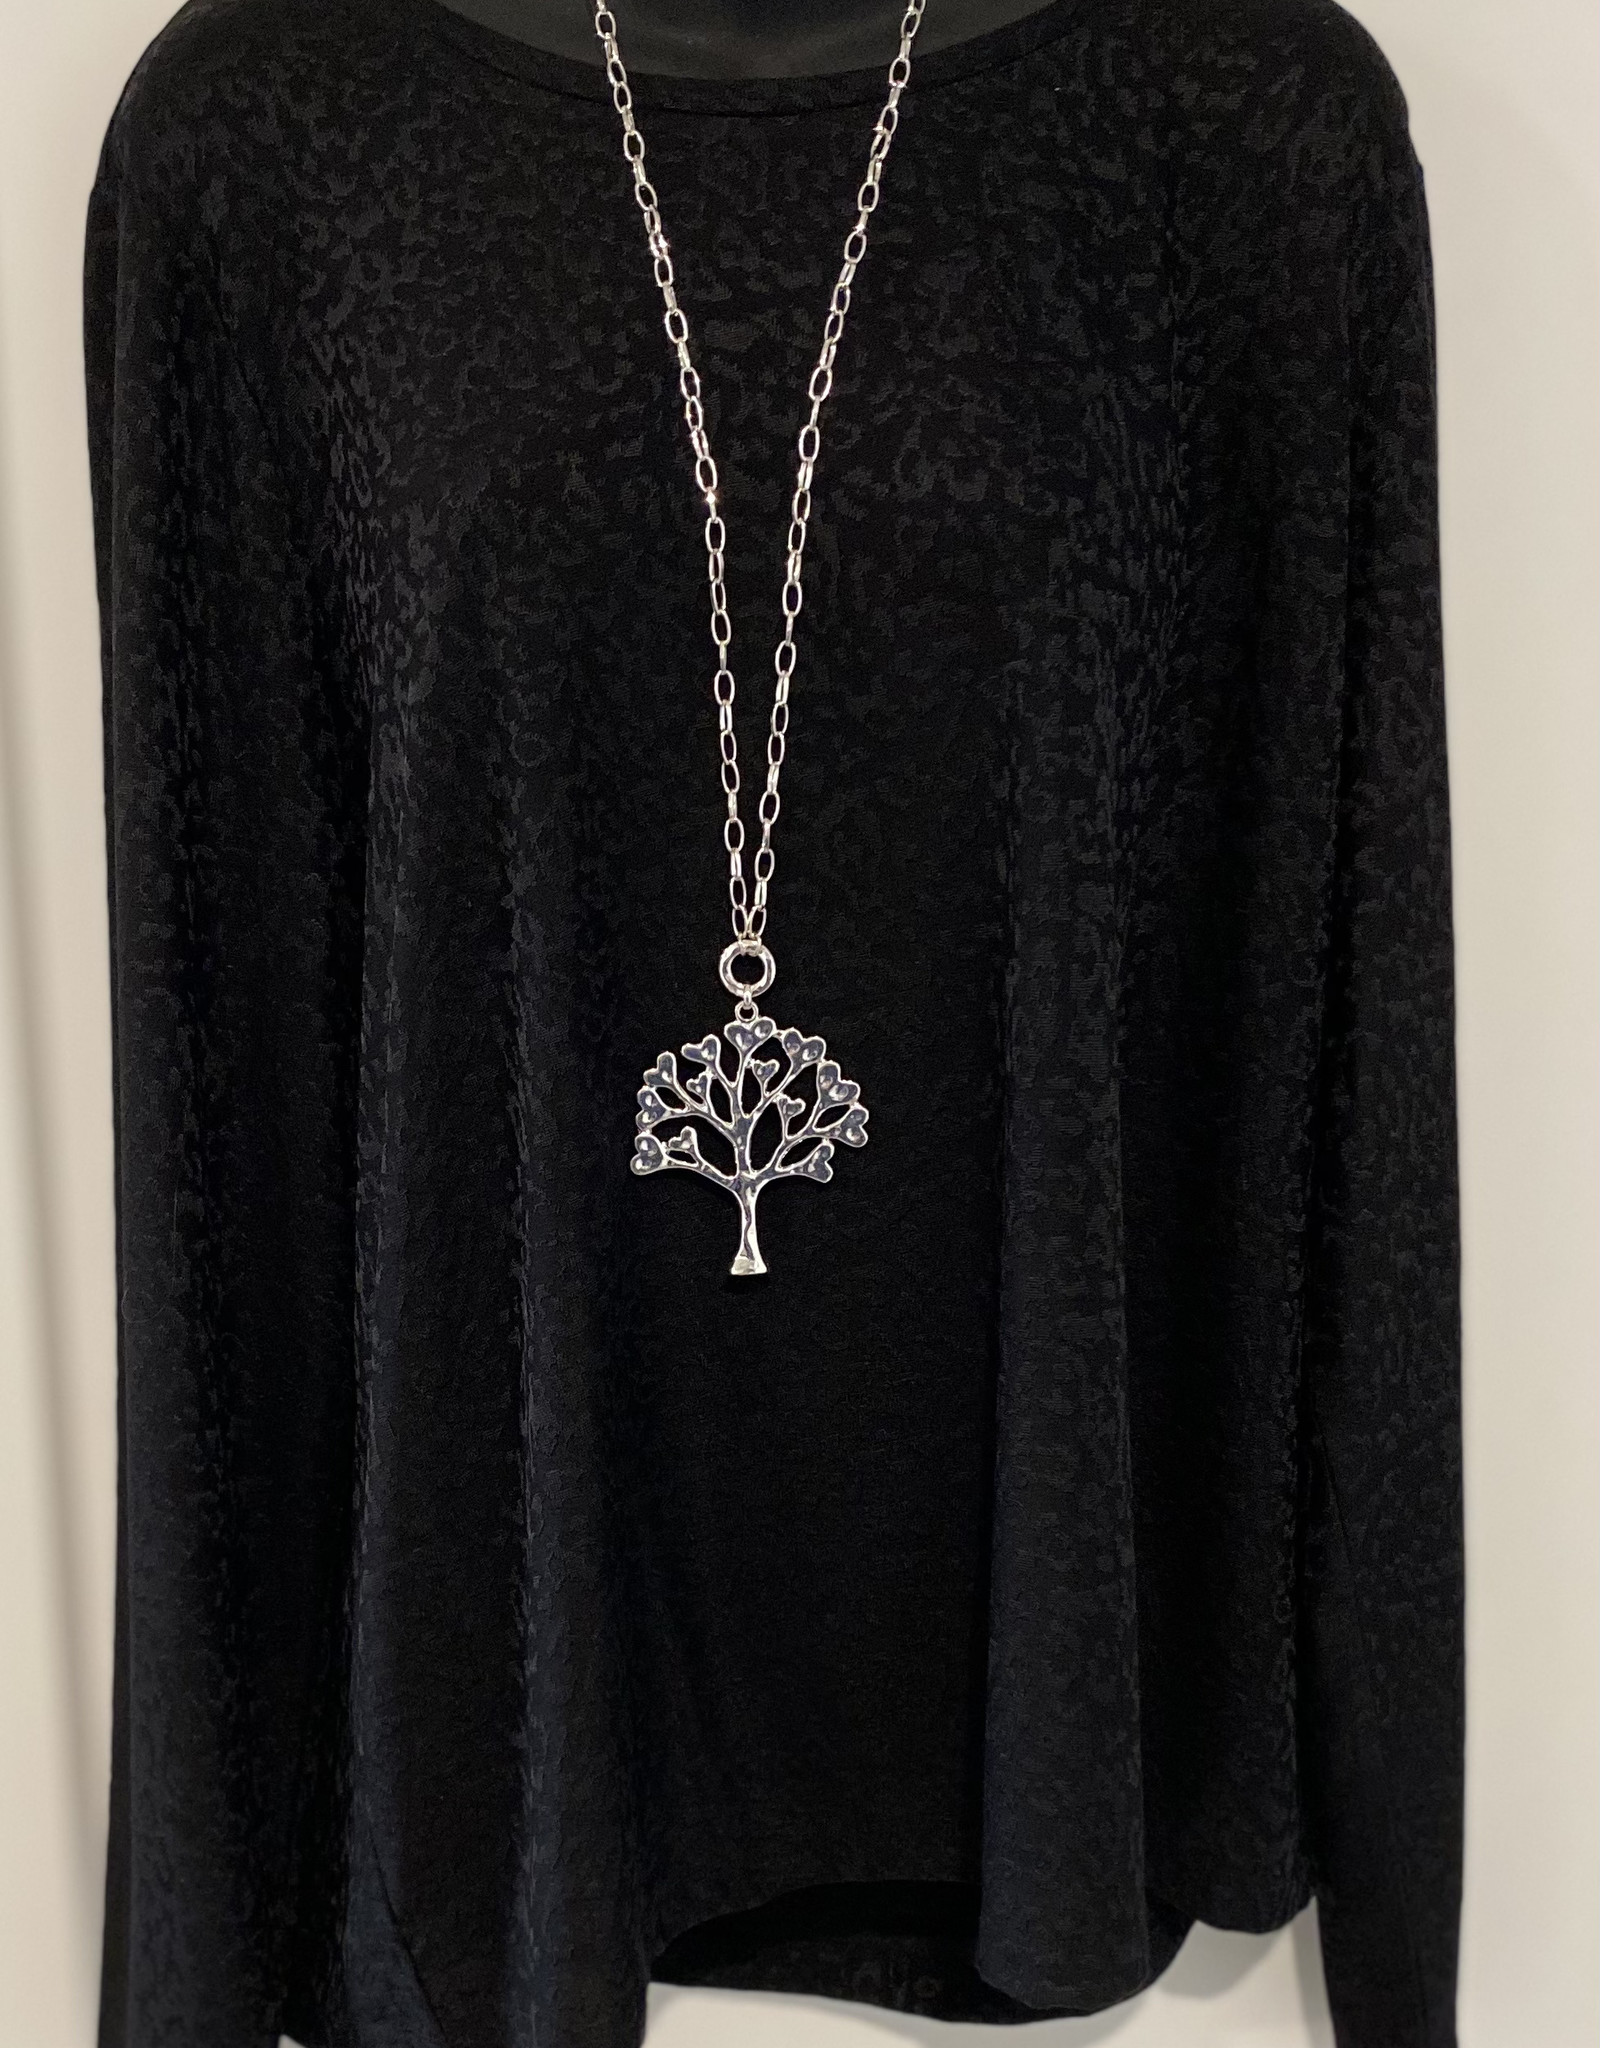 Rope Style- Tree of Life Pendant Necklace